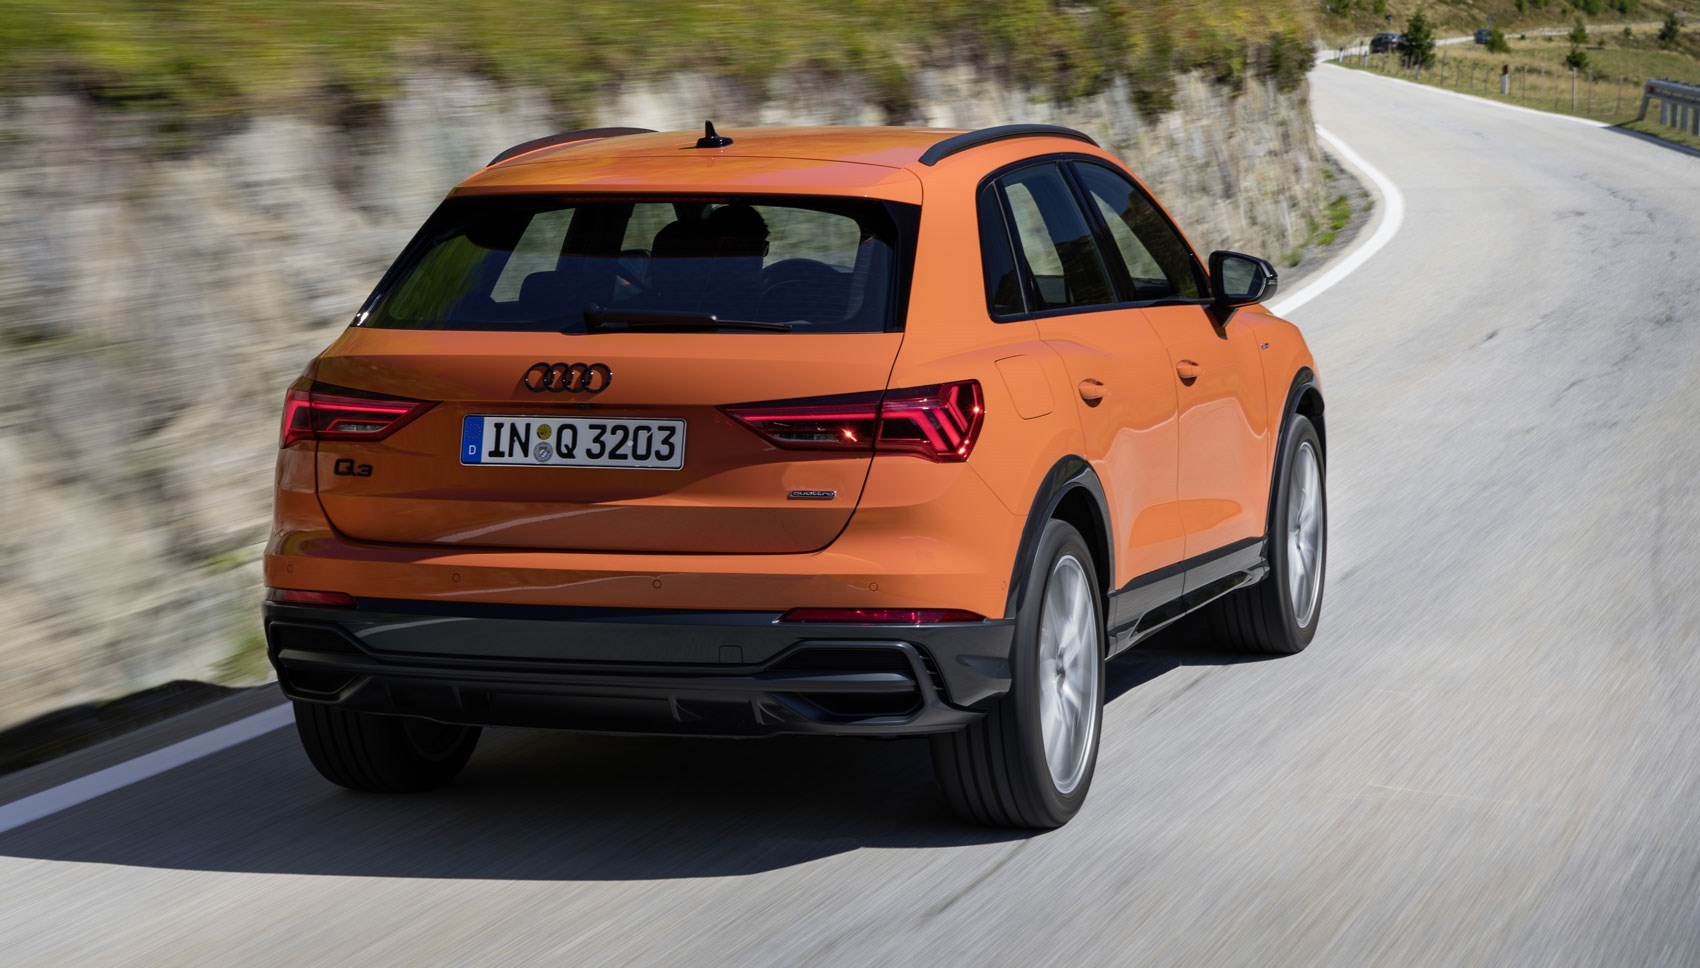 New Audi Q3 (2019) review: master of none | CAR Magazine